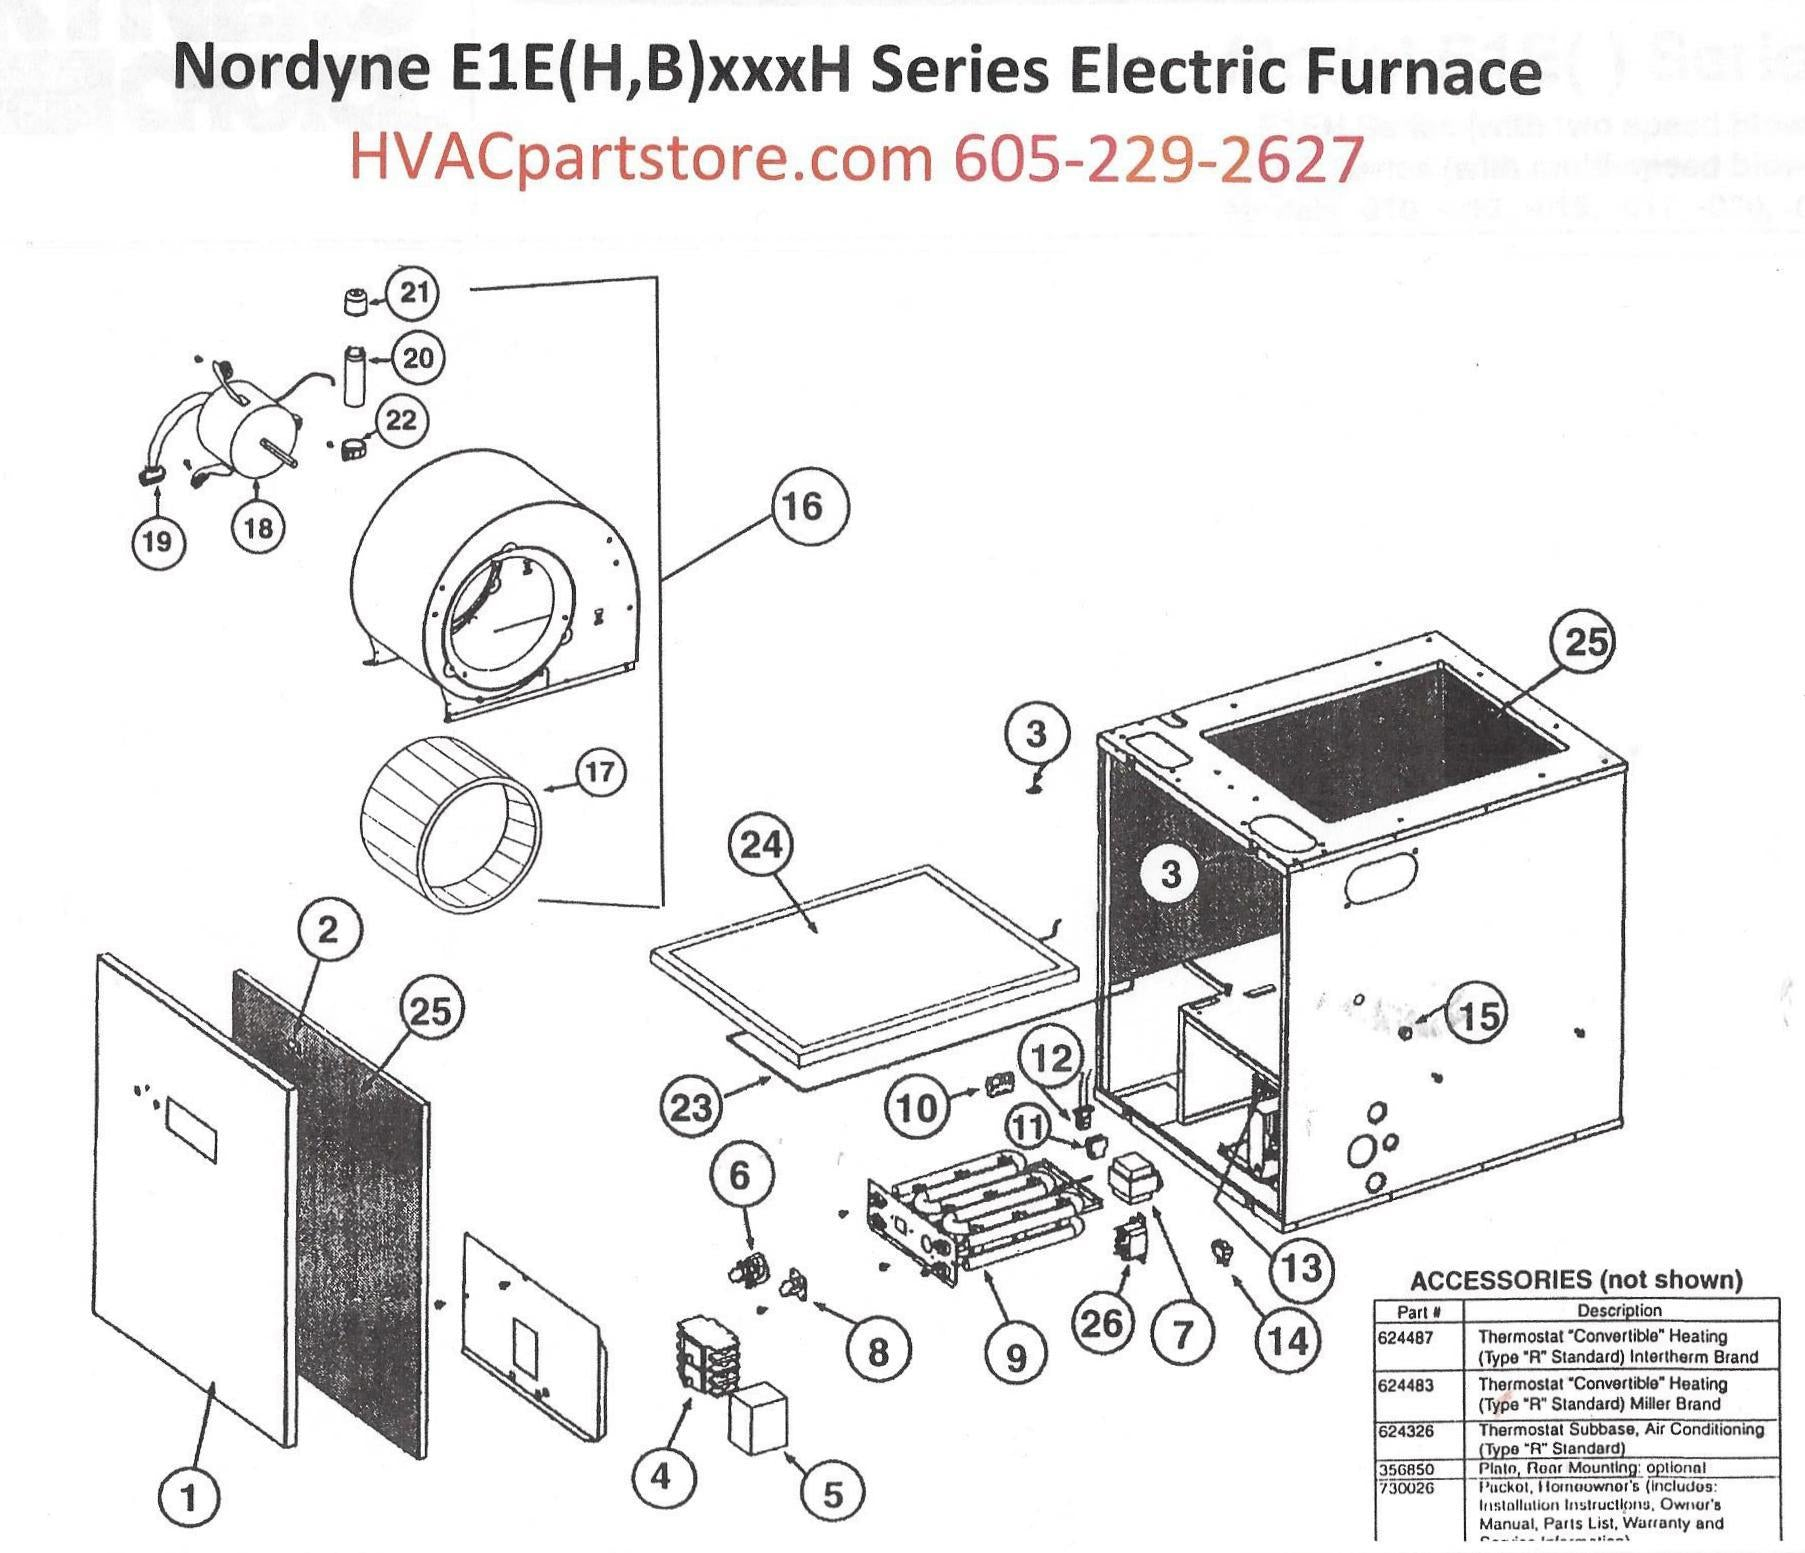 E1eh020h Nordyne Electric Furnace Parts on electric strike wiring diagram